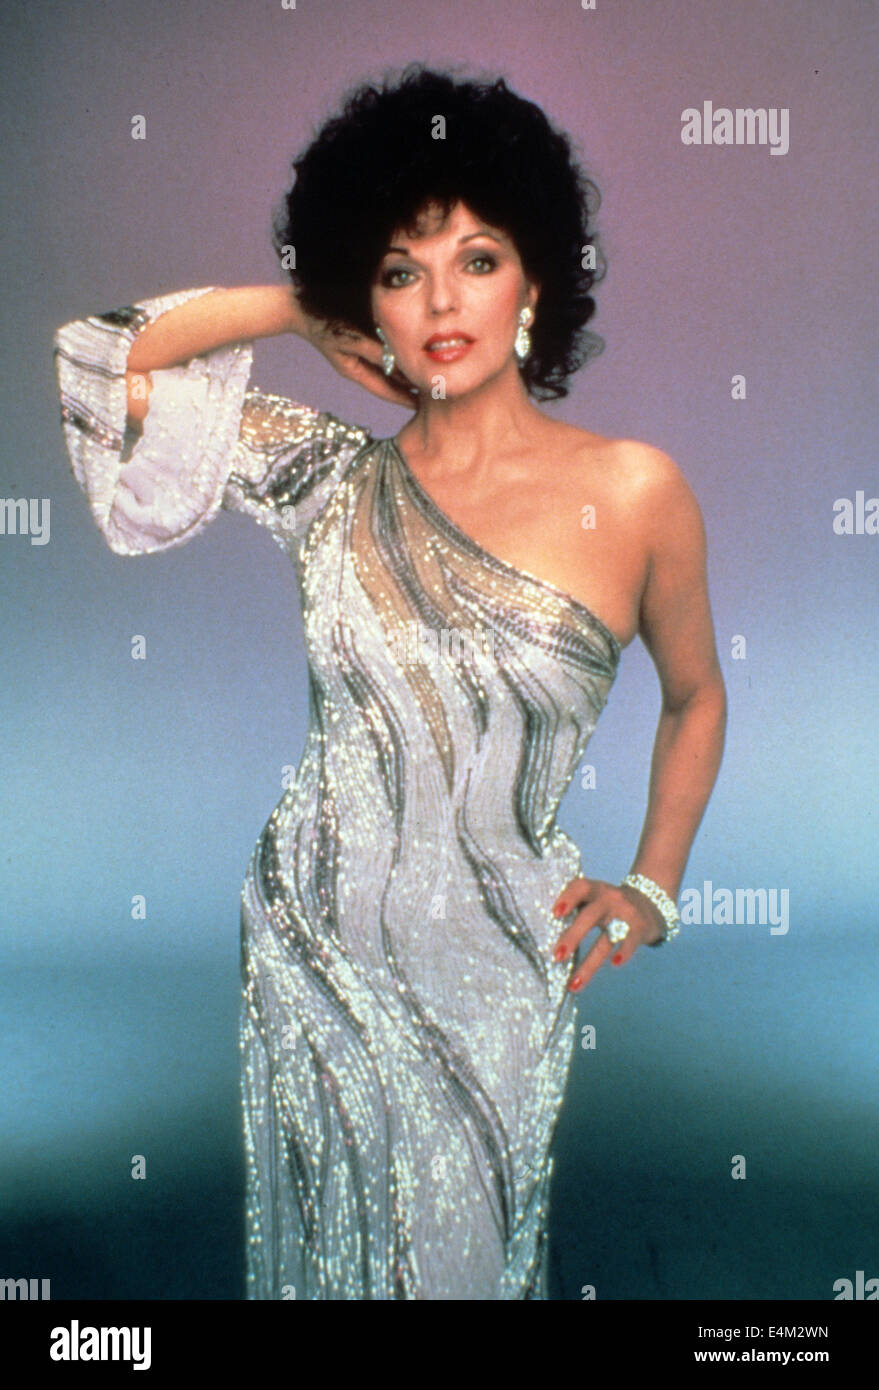 DYNASTY  Aaron Spelling US TV series (1981-89) with Joan Collins - Stock Image